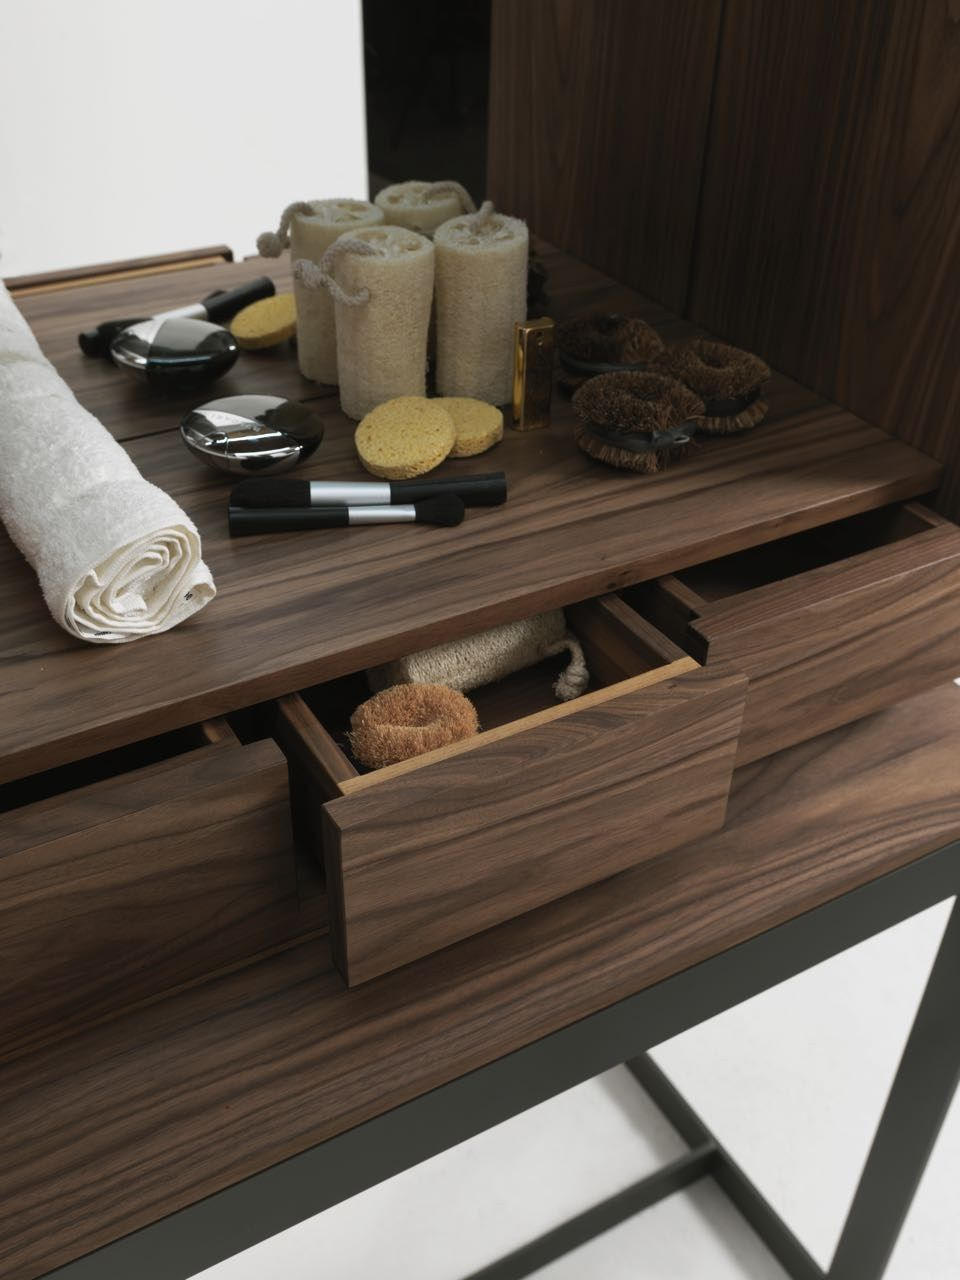 Walnut dressing table FLY VANITY by Riva 1920 | design Giuliano Cappelletti, gabriele cappelletti